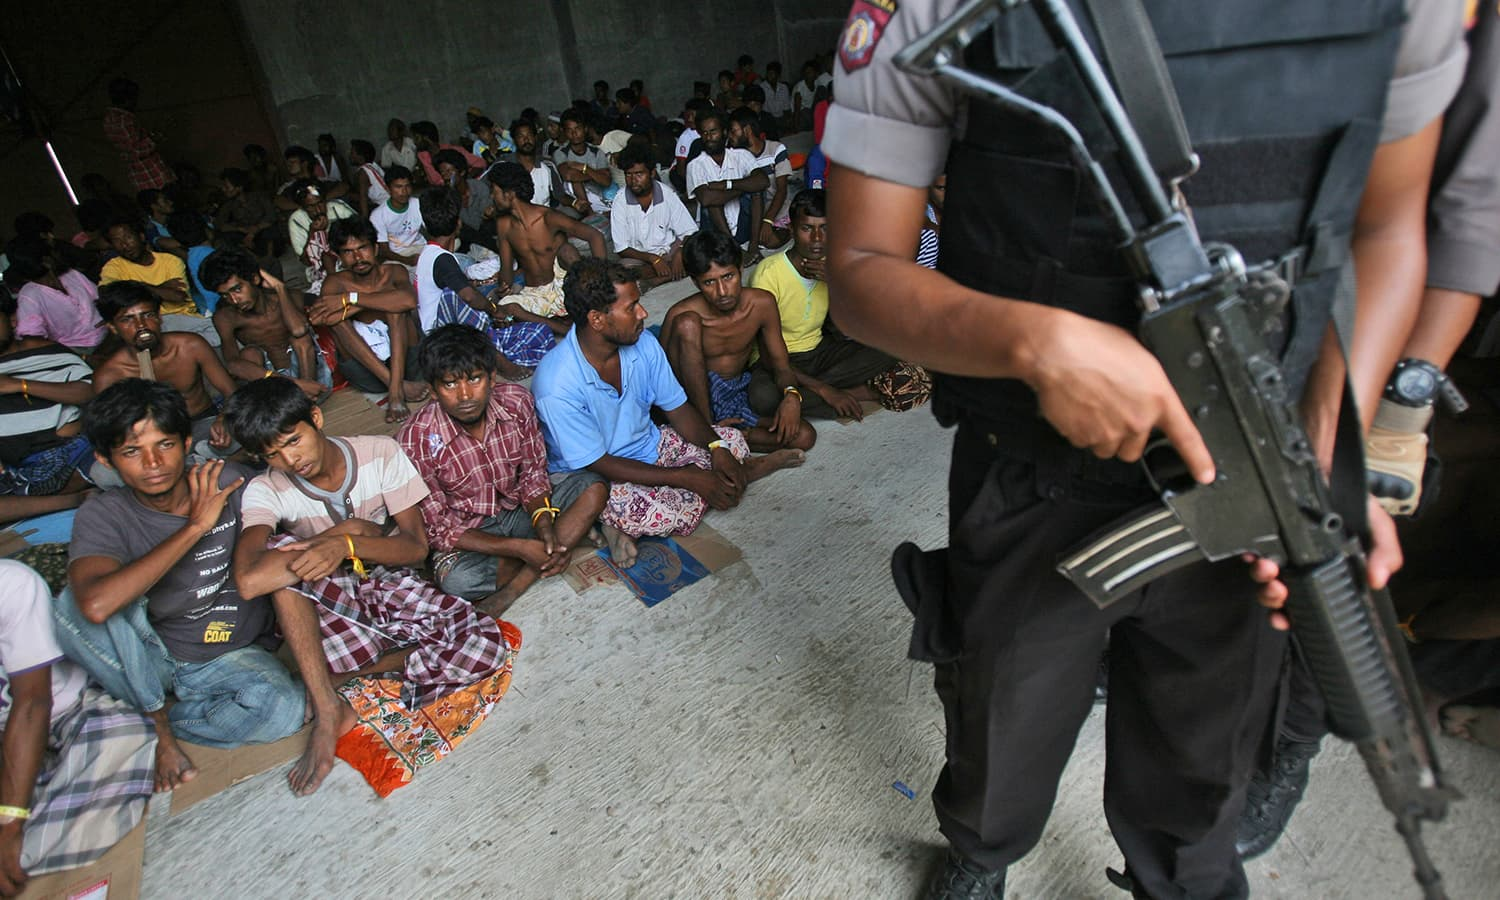 An armed Indonesian police officer stands guard during the visit of Bangladesh's Ambassador to Indonesia Mohammad Nazmul Quaunine at a temporary shelter in Langsa, Aceh province, Indonesia.